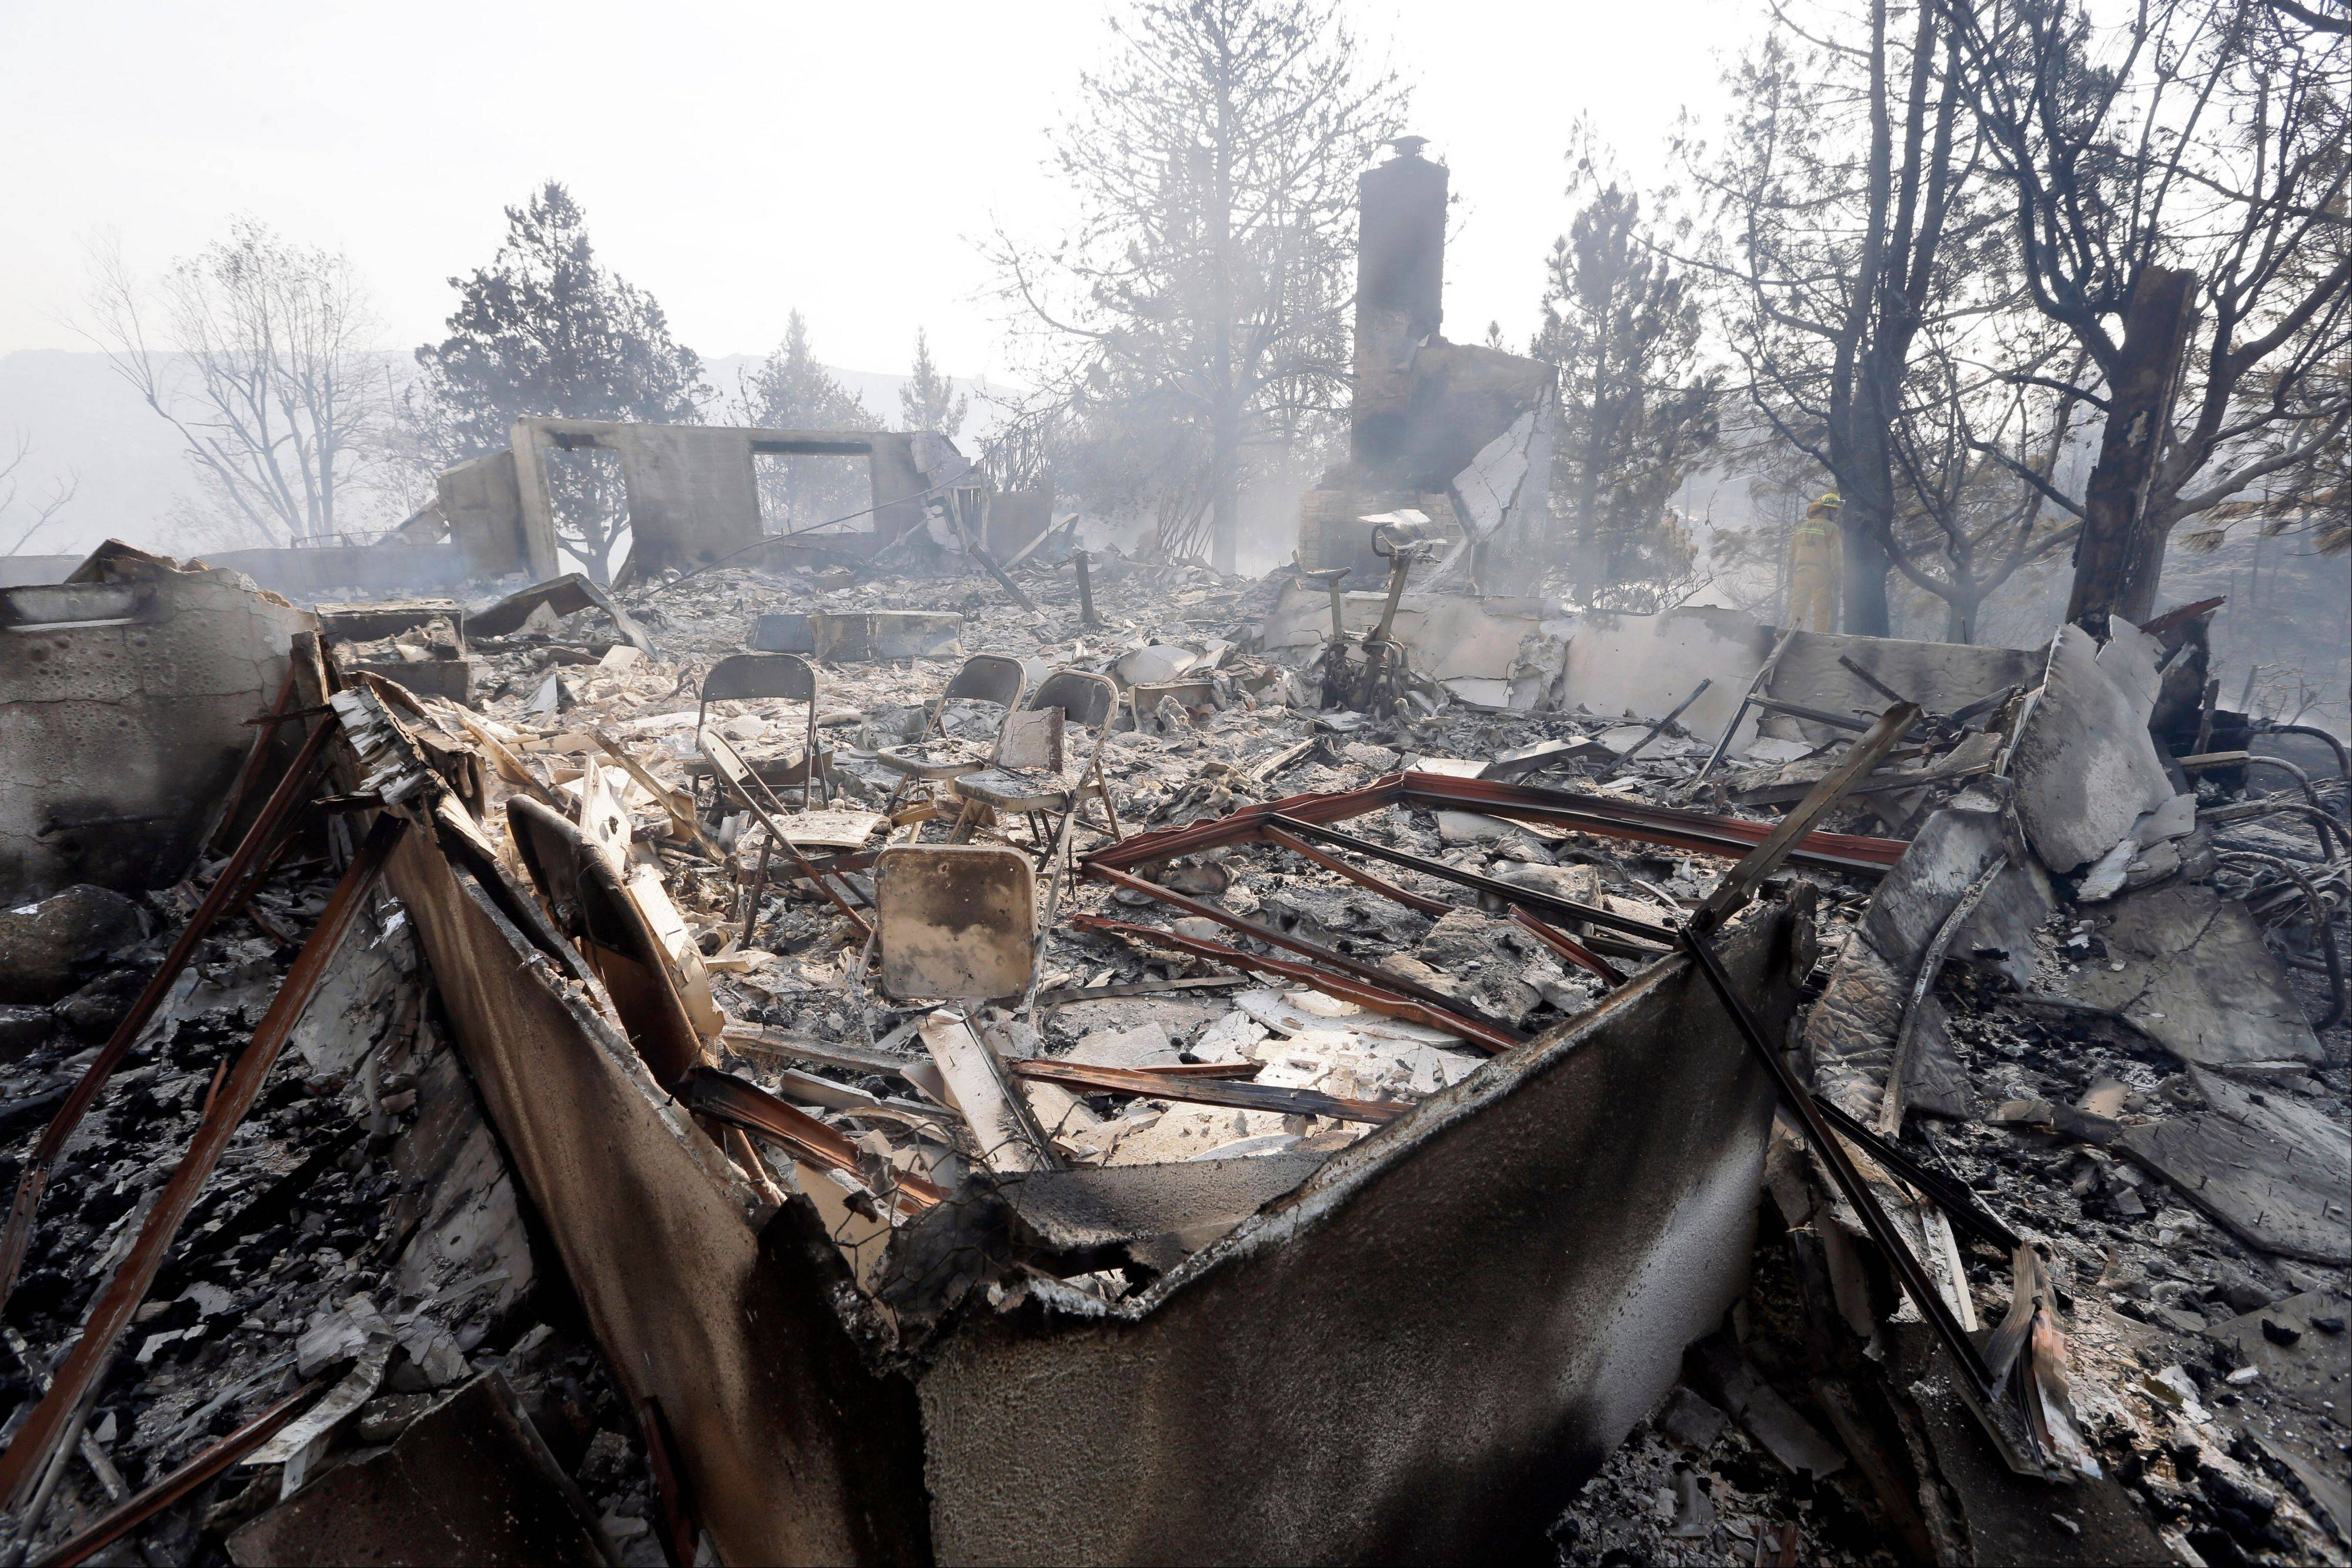 Smoke rises from the remains of a destroyed home in Lake Hughes, Calif., Sunday. Erratic winds fanned a blaze in the Angeles National Forest to nearly 41 square miles early Sunday, after fast-moving flames triggered the evacuation of nearly 1,000 homes in Lake Hughes and Lake Elizabeth, officials said.